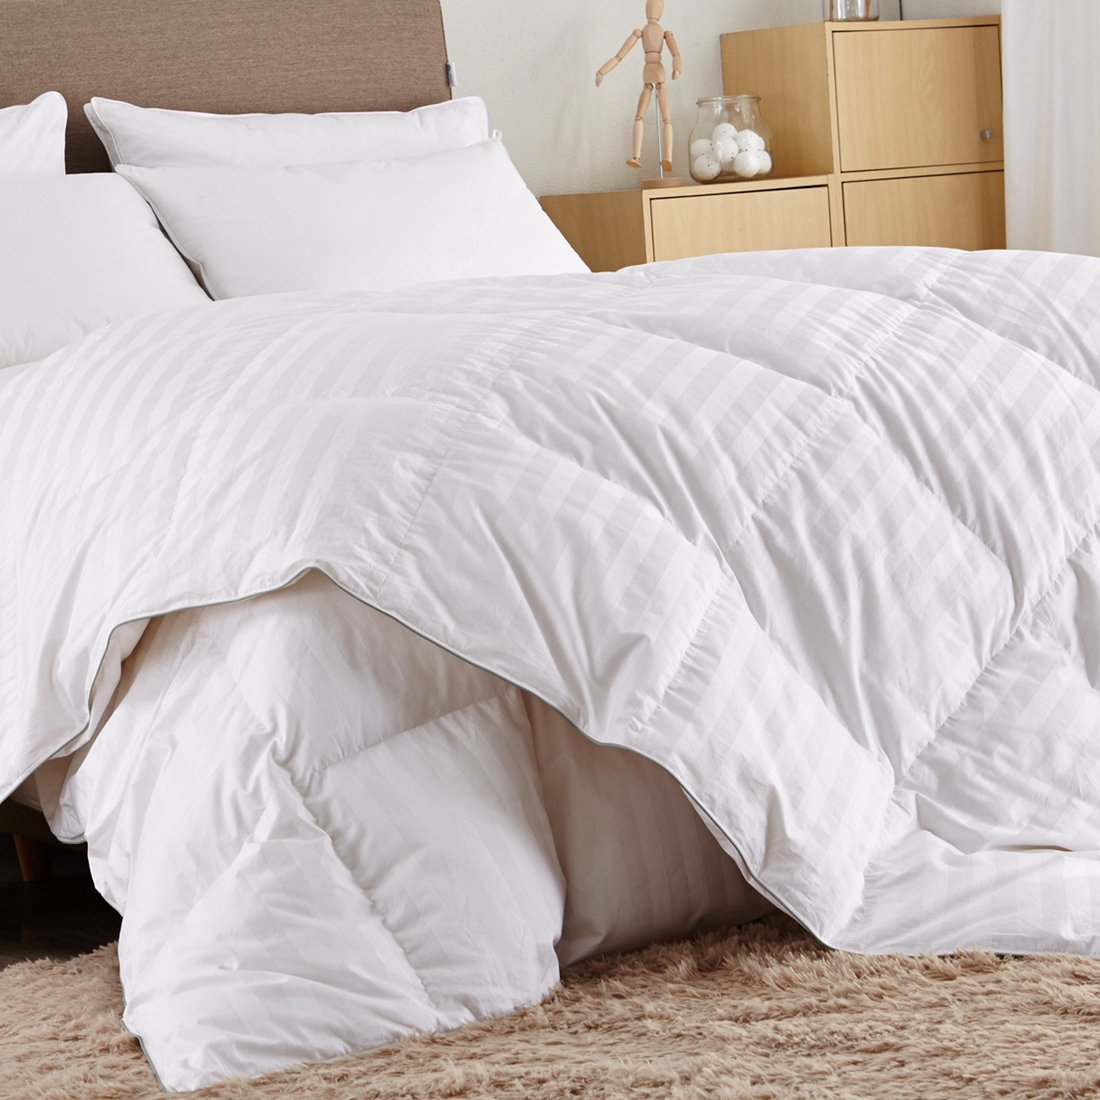 Puredown White Down Comforter-Full/Queen-Cotton Shell 500TC-Stripe White